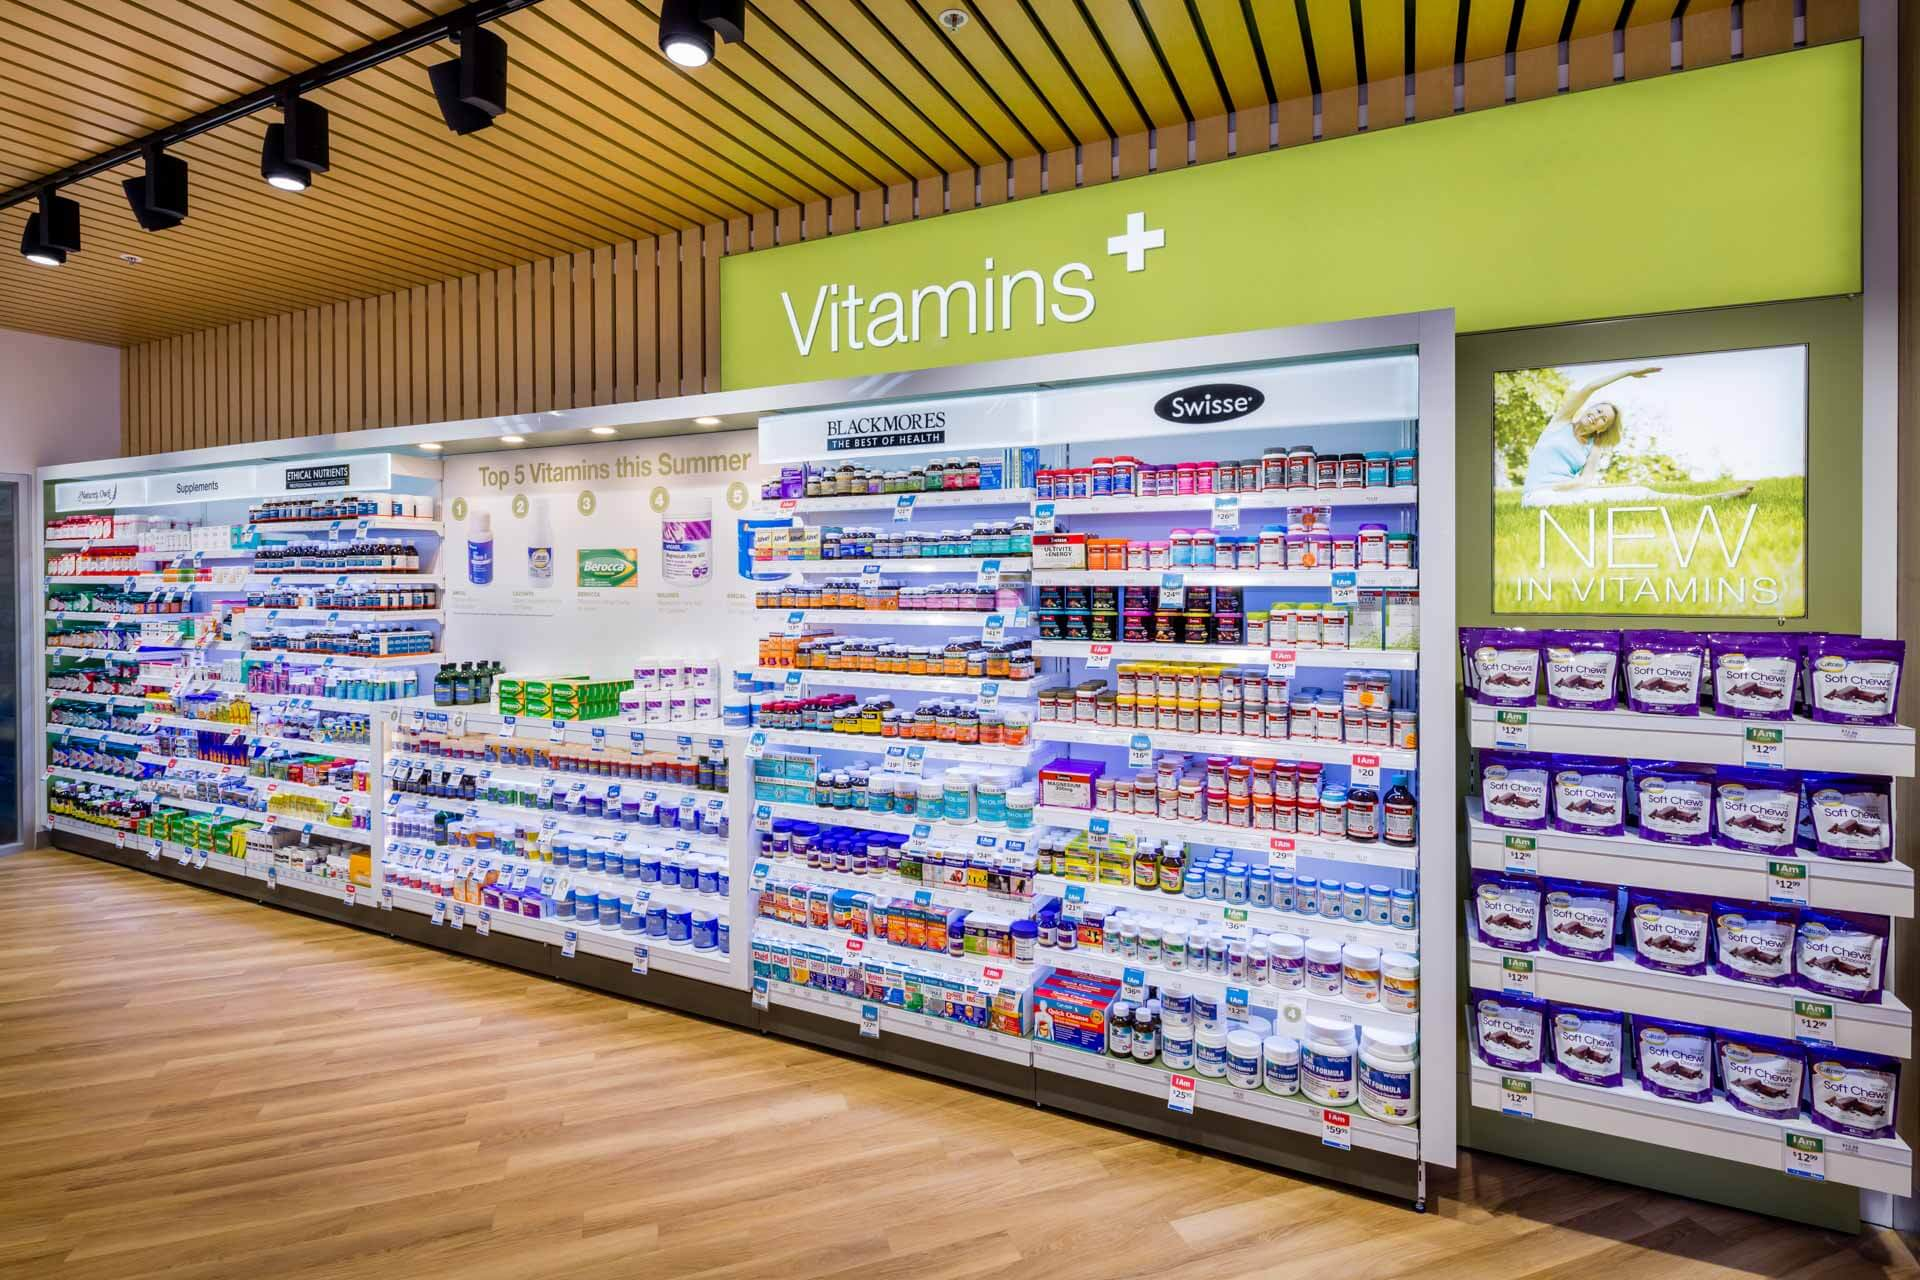 amcal+ pharmacy internal photograph of vitamin product area by sigma pharmaceuticals in stud park shopping centre